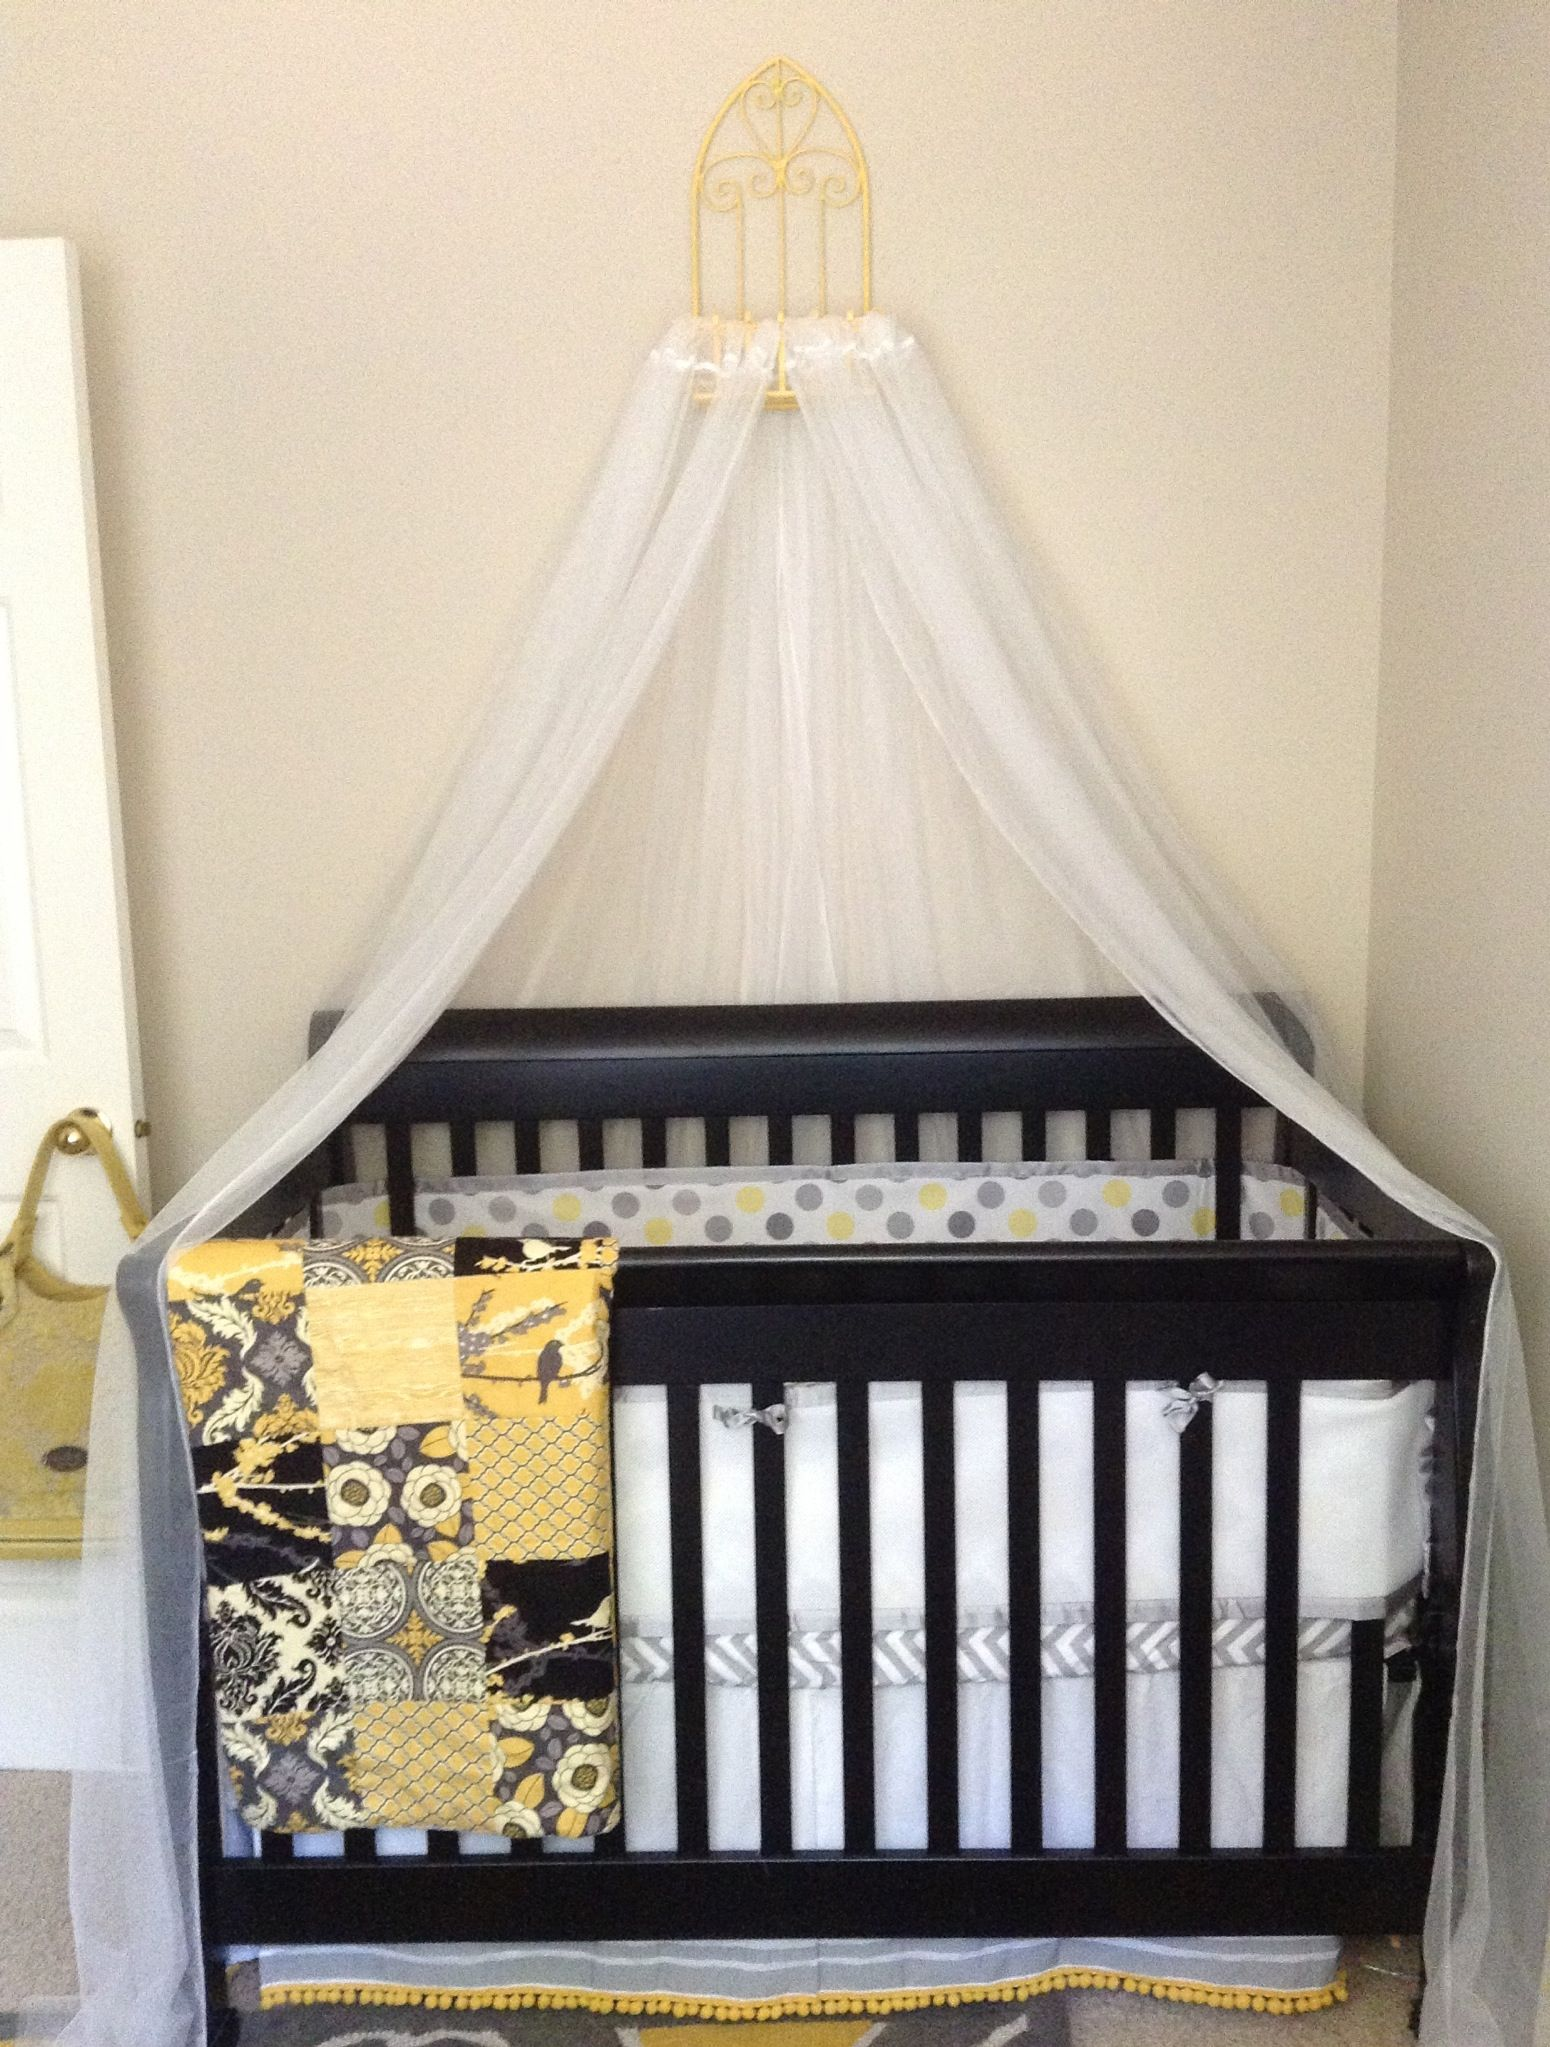 DIY crib canopy for 19! Outdoor wire hanger from JoAnn